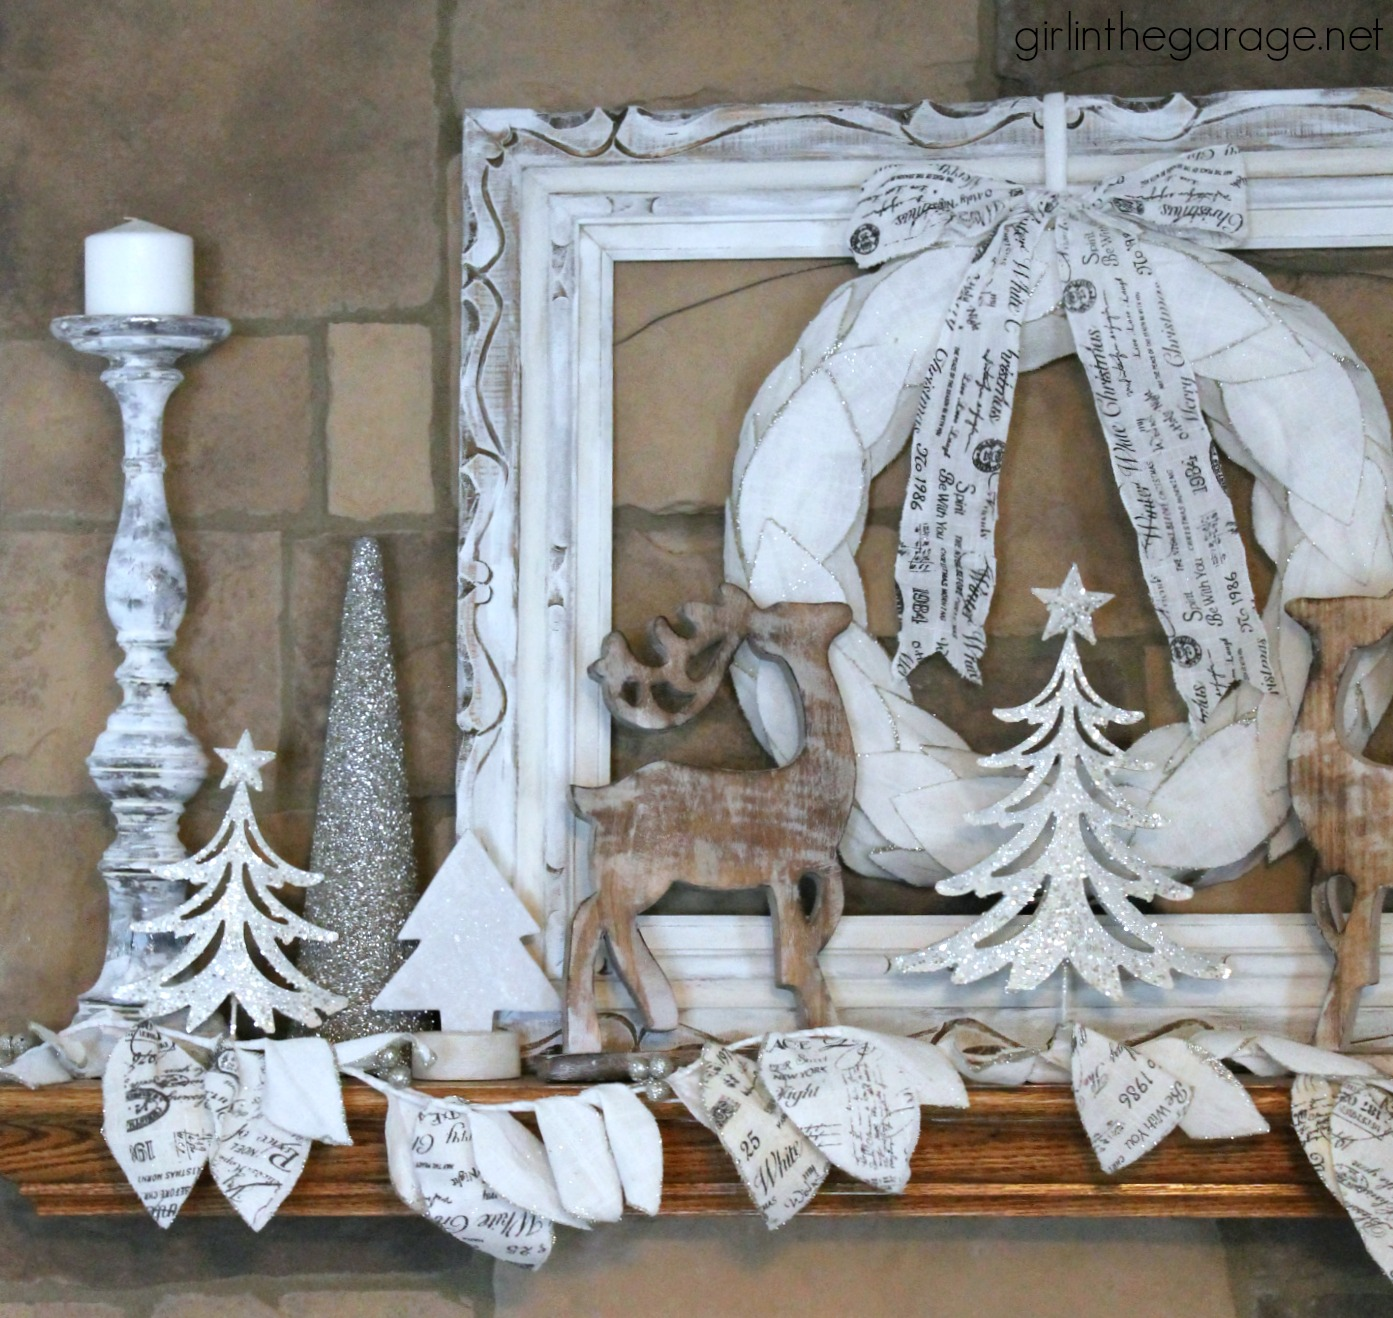 Christmas Decorating - Sparkly White Winter Mantel - Girl in the Garage